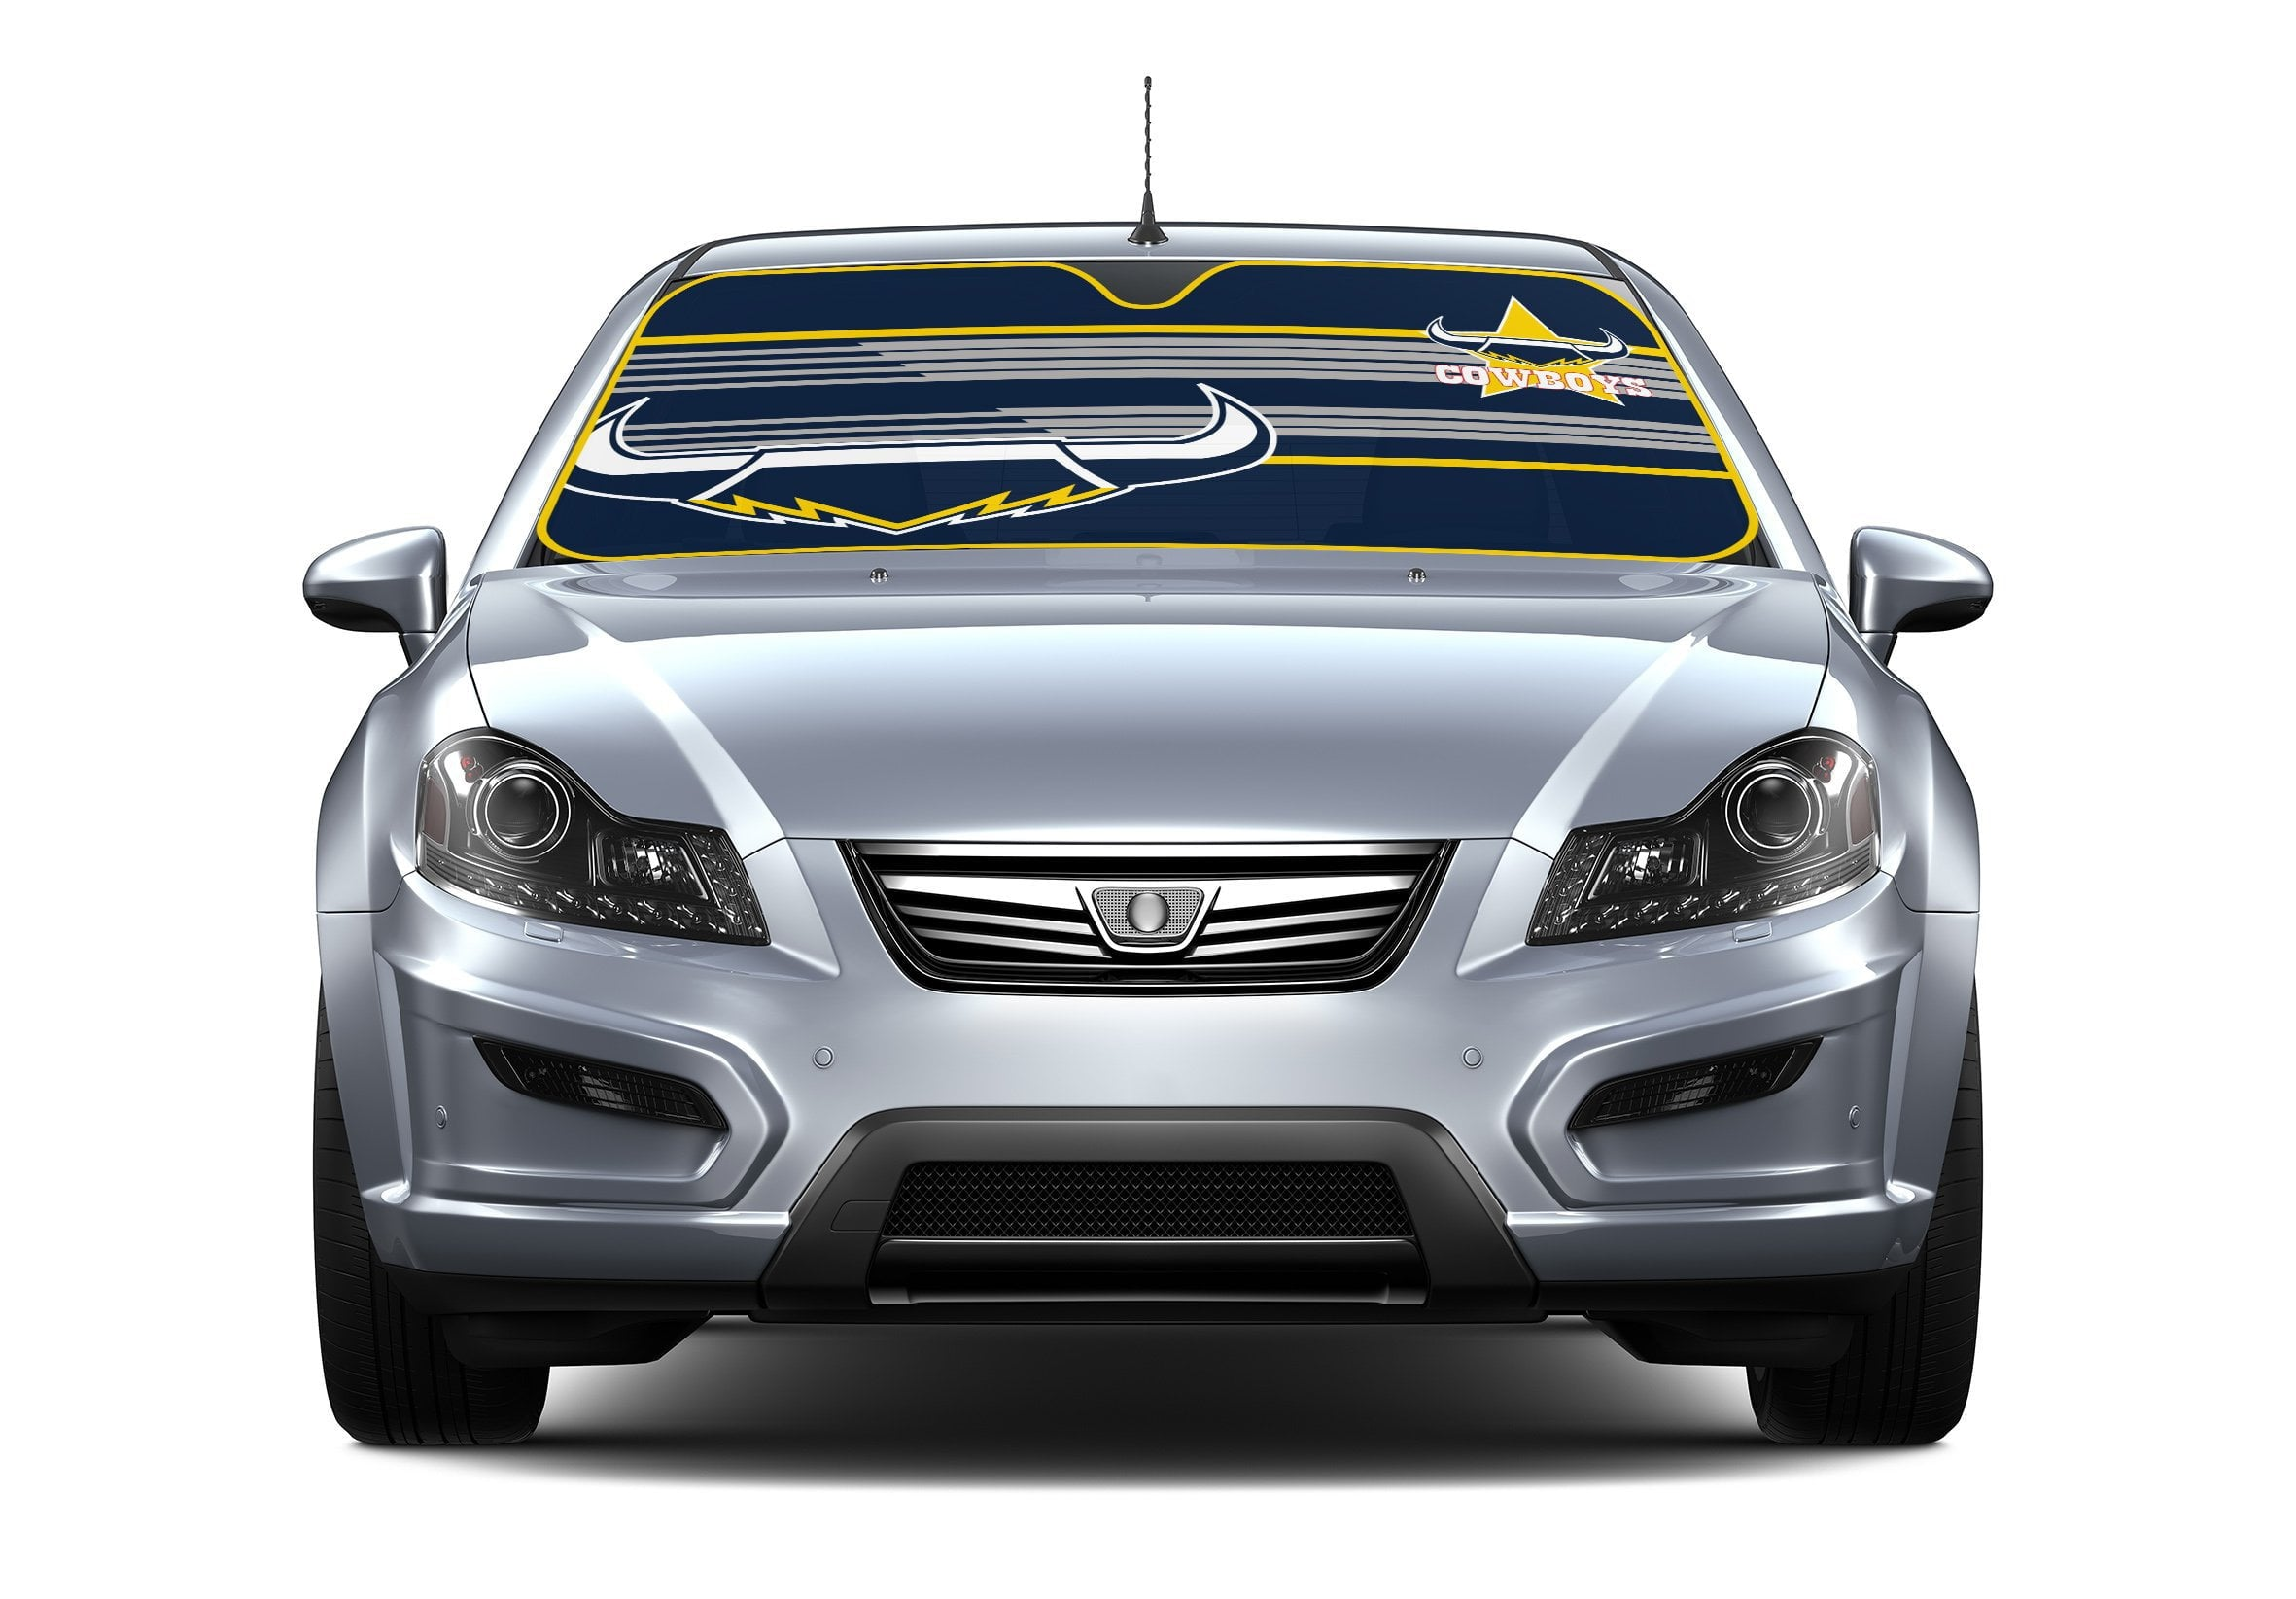 NRL Car Shade 2018 Cowboys